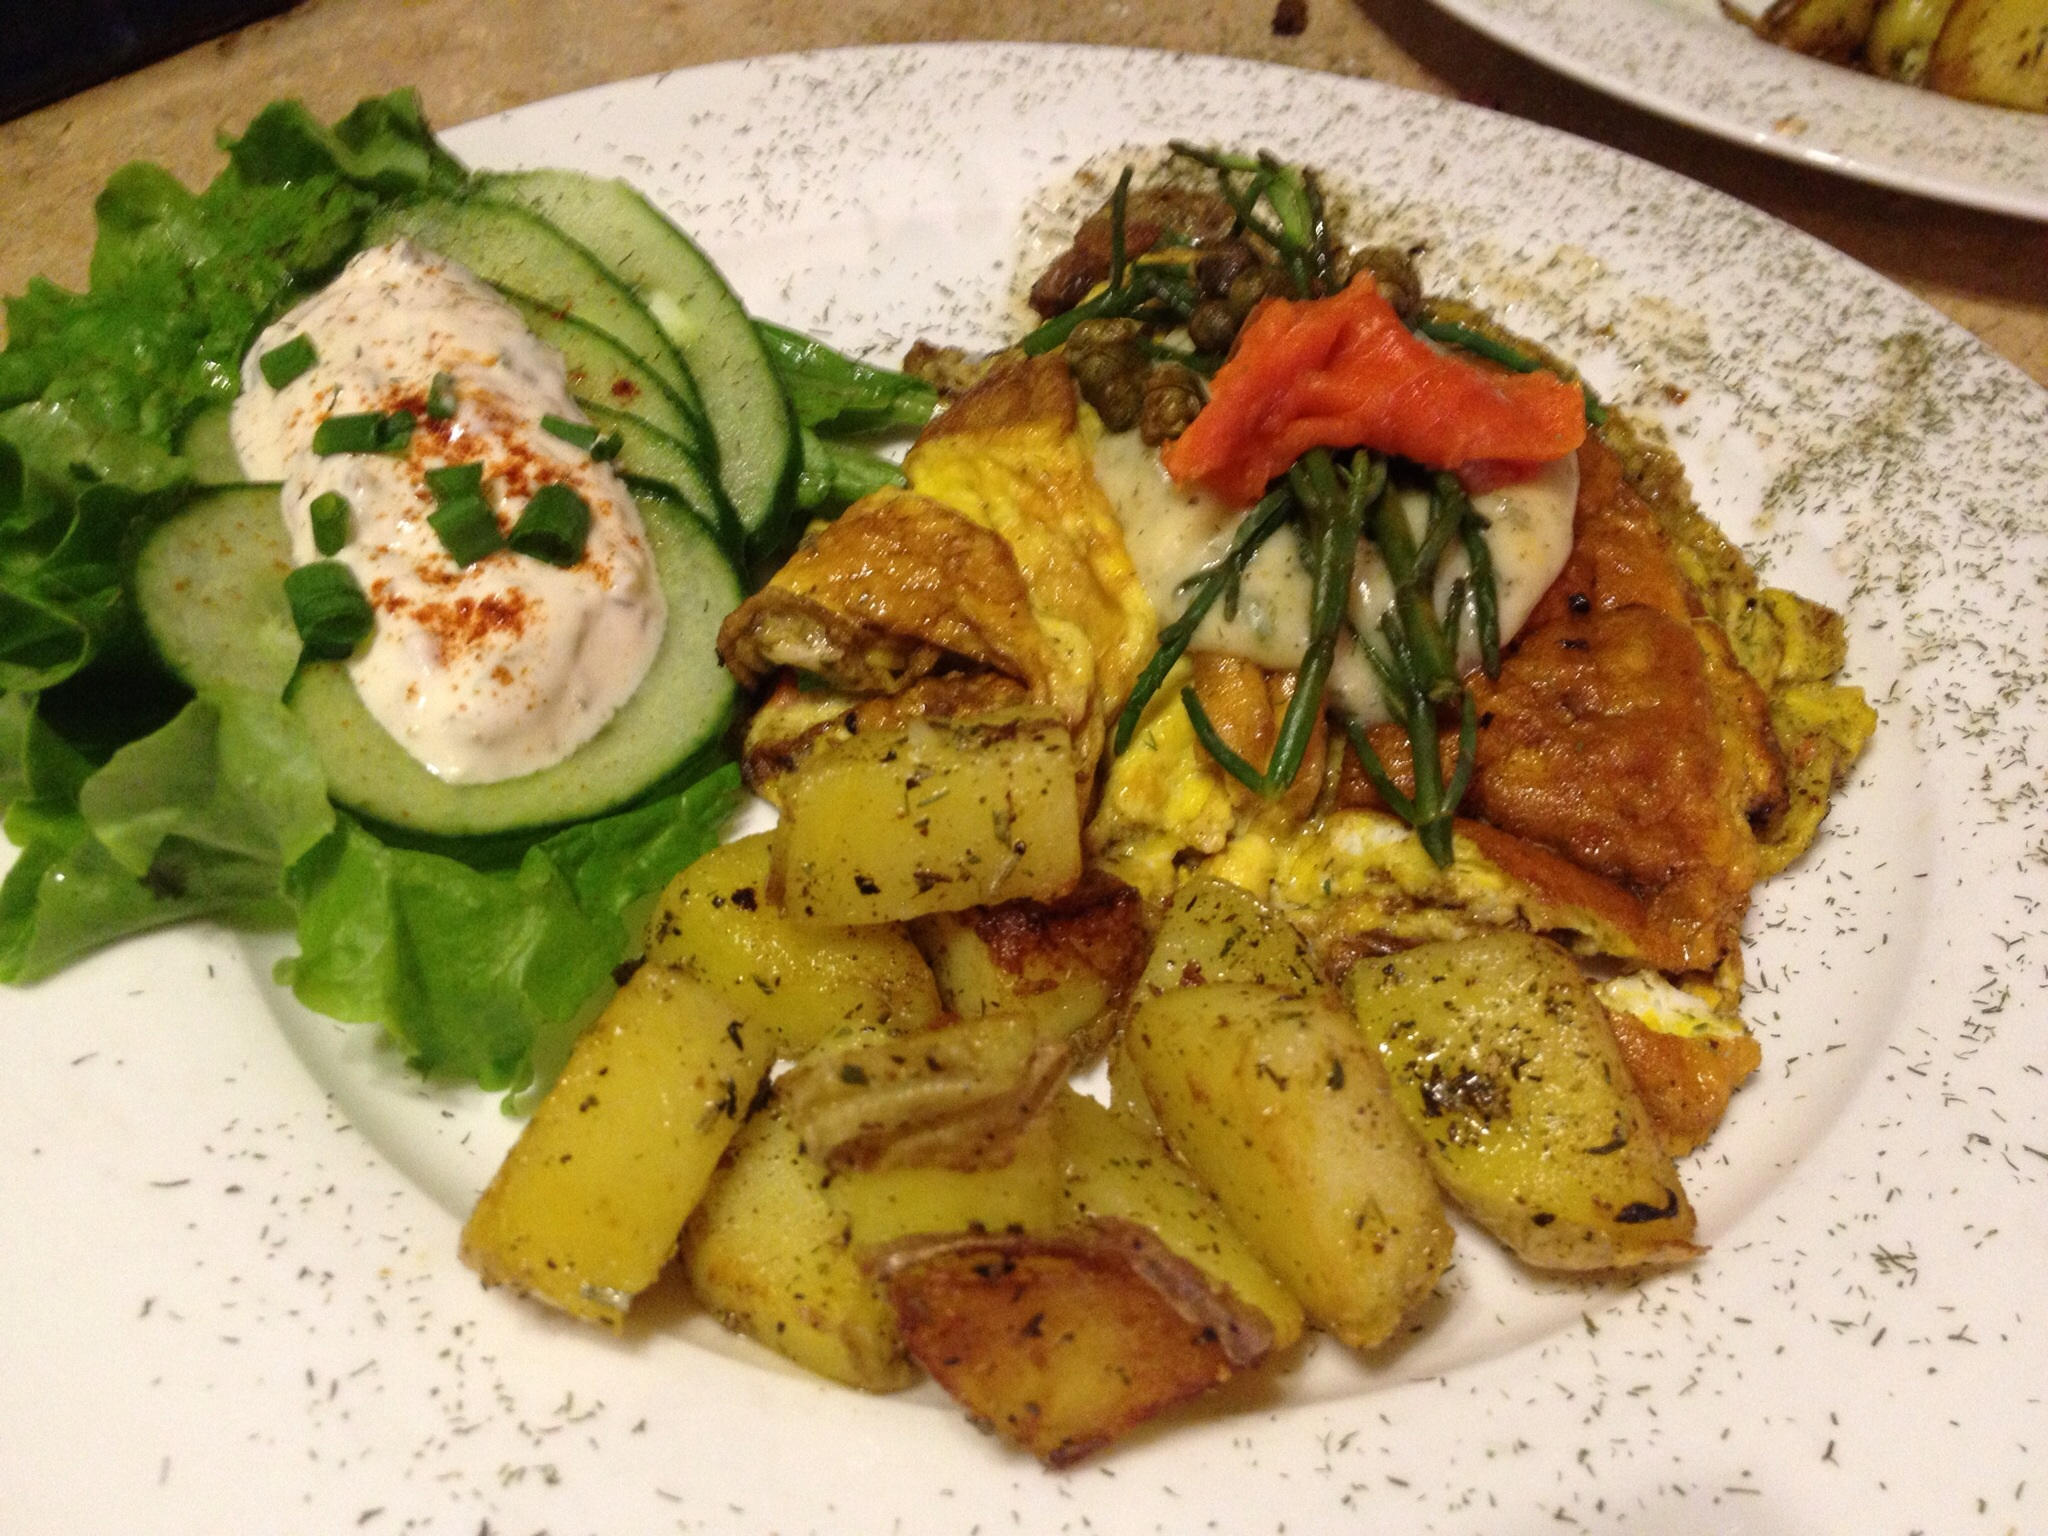 Lox omelette with Dill Béarnaise Sauce